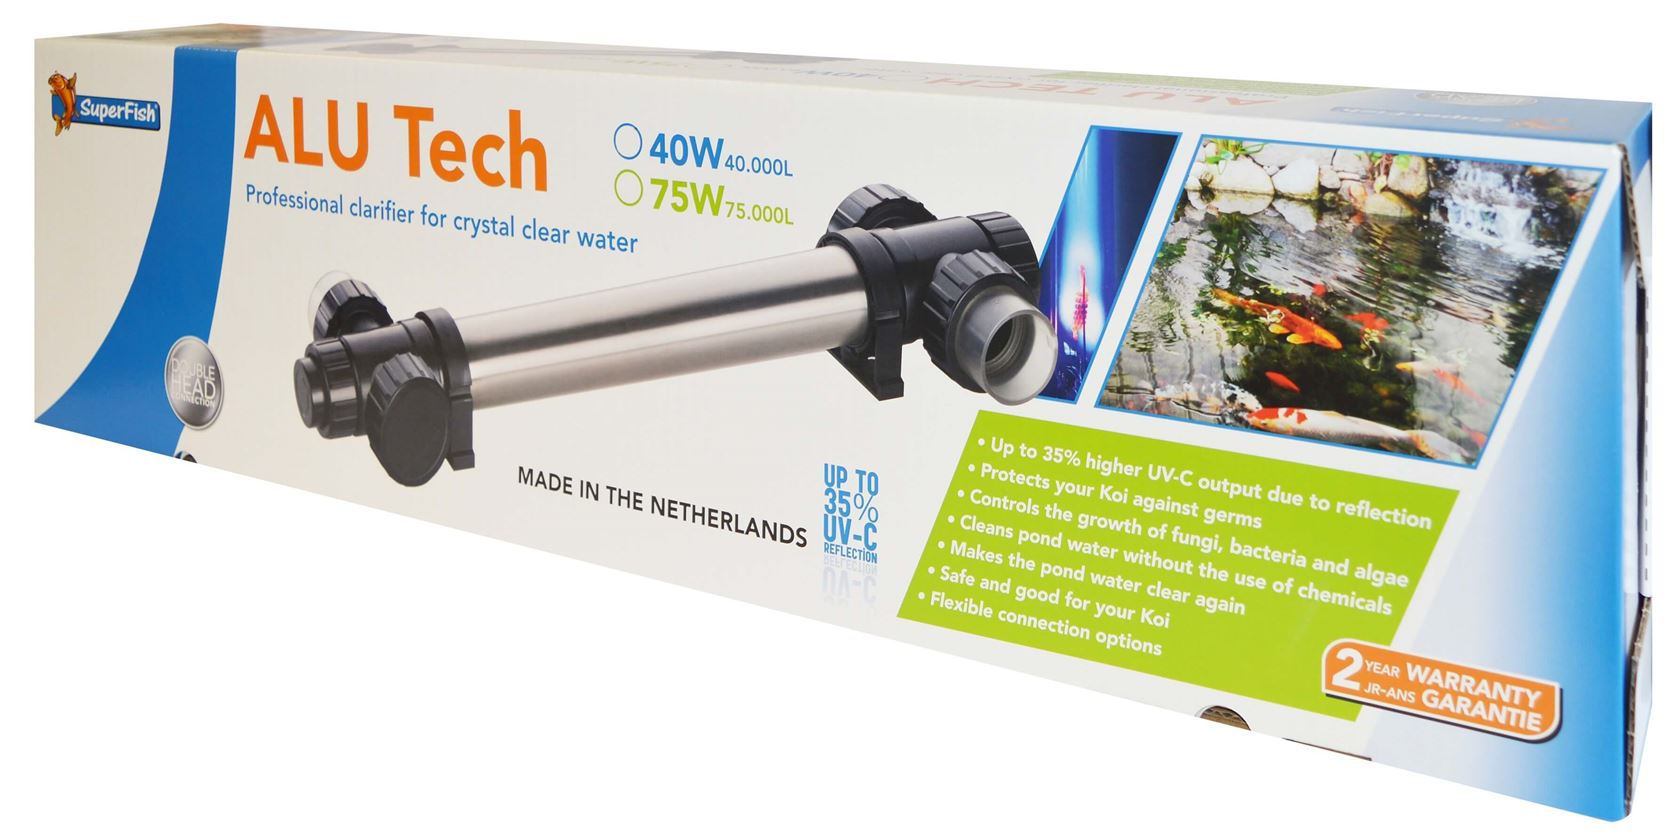 superfish alutech uv-c t5